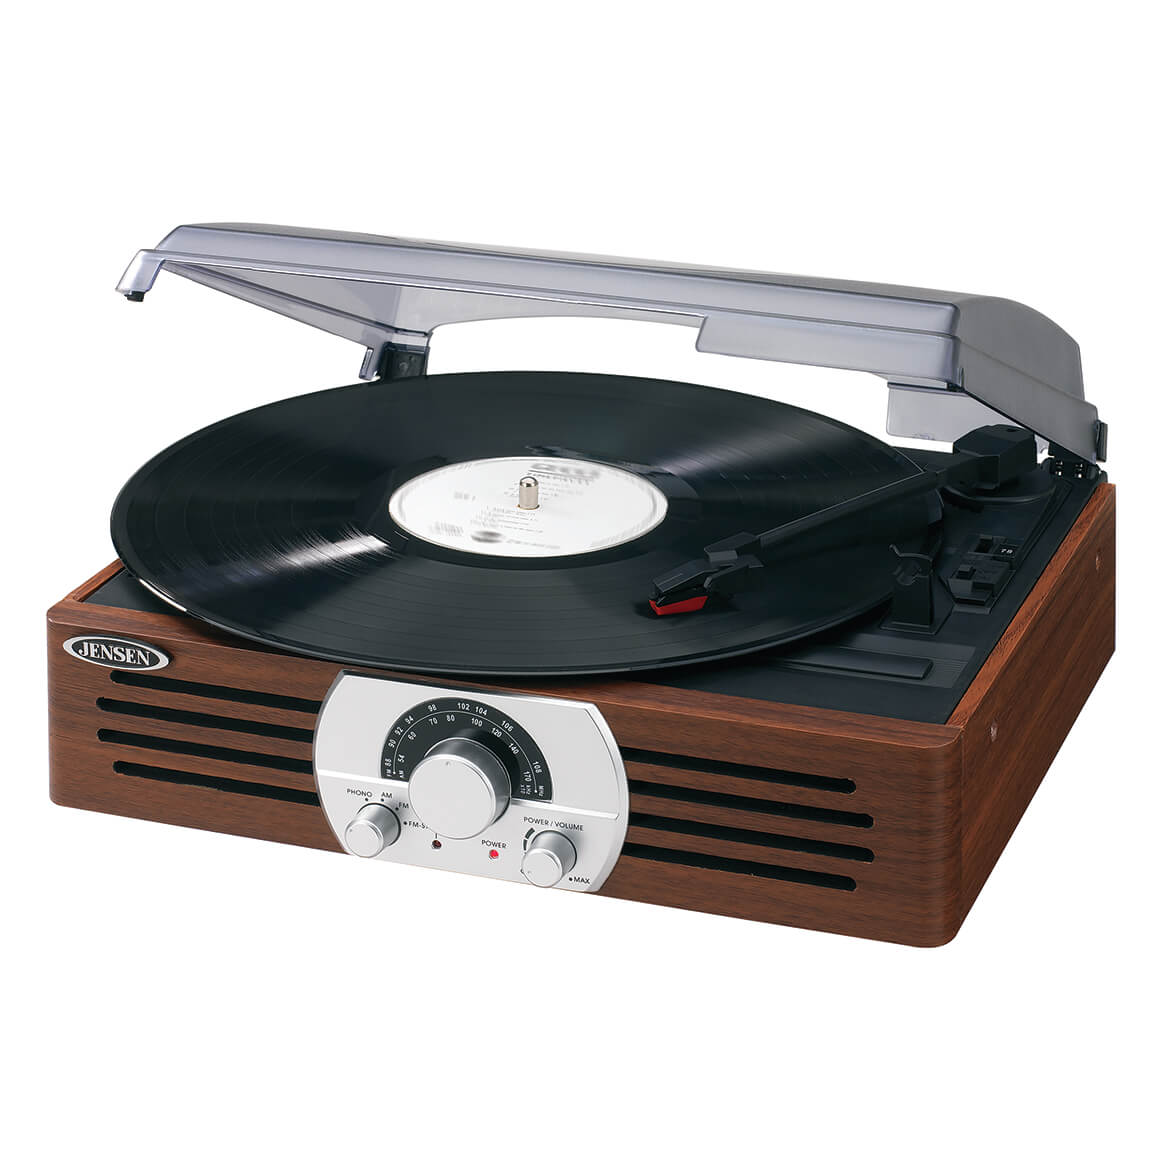 Jensen® 3 Speed Wooden Stereo Turntable with Radio-349129